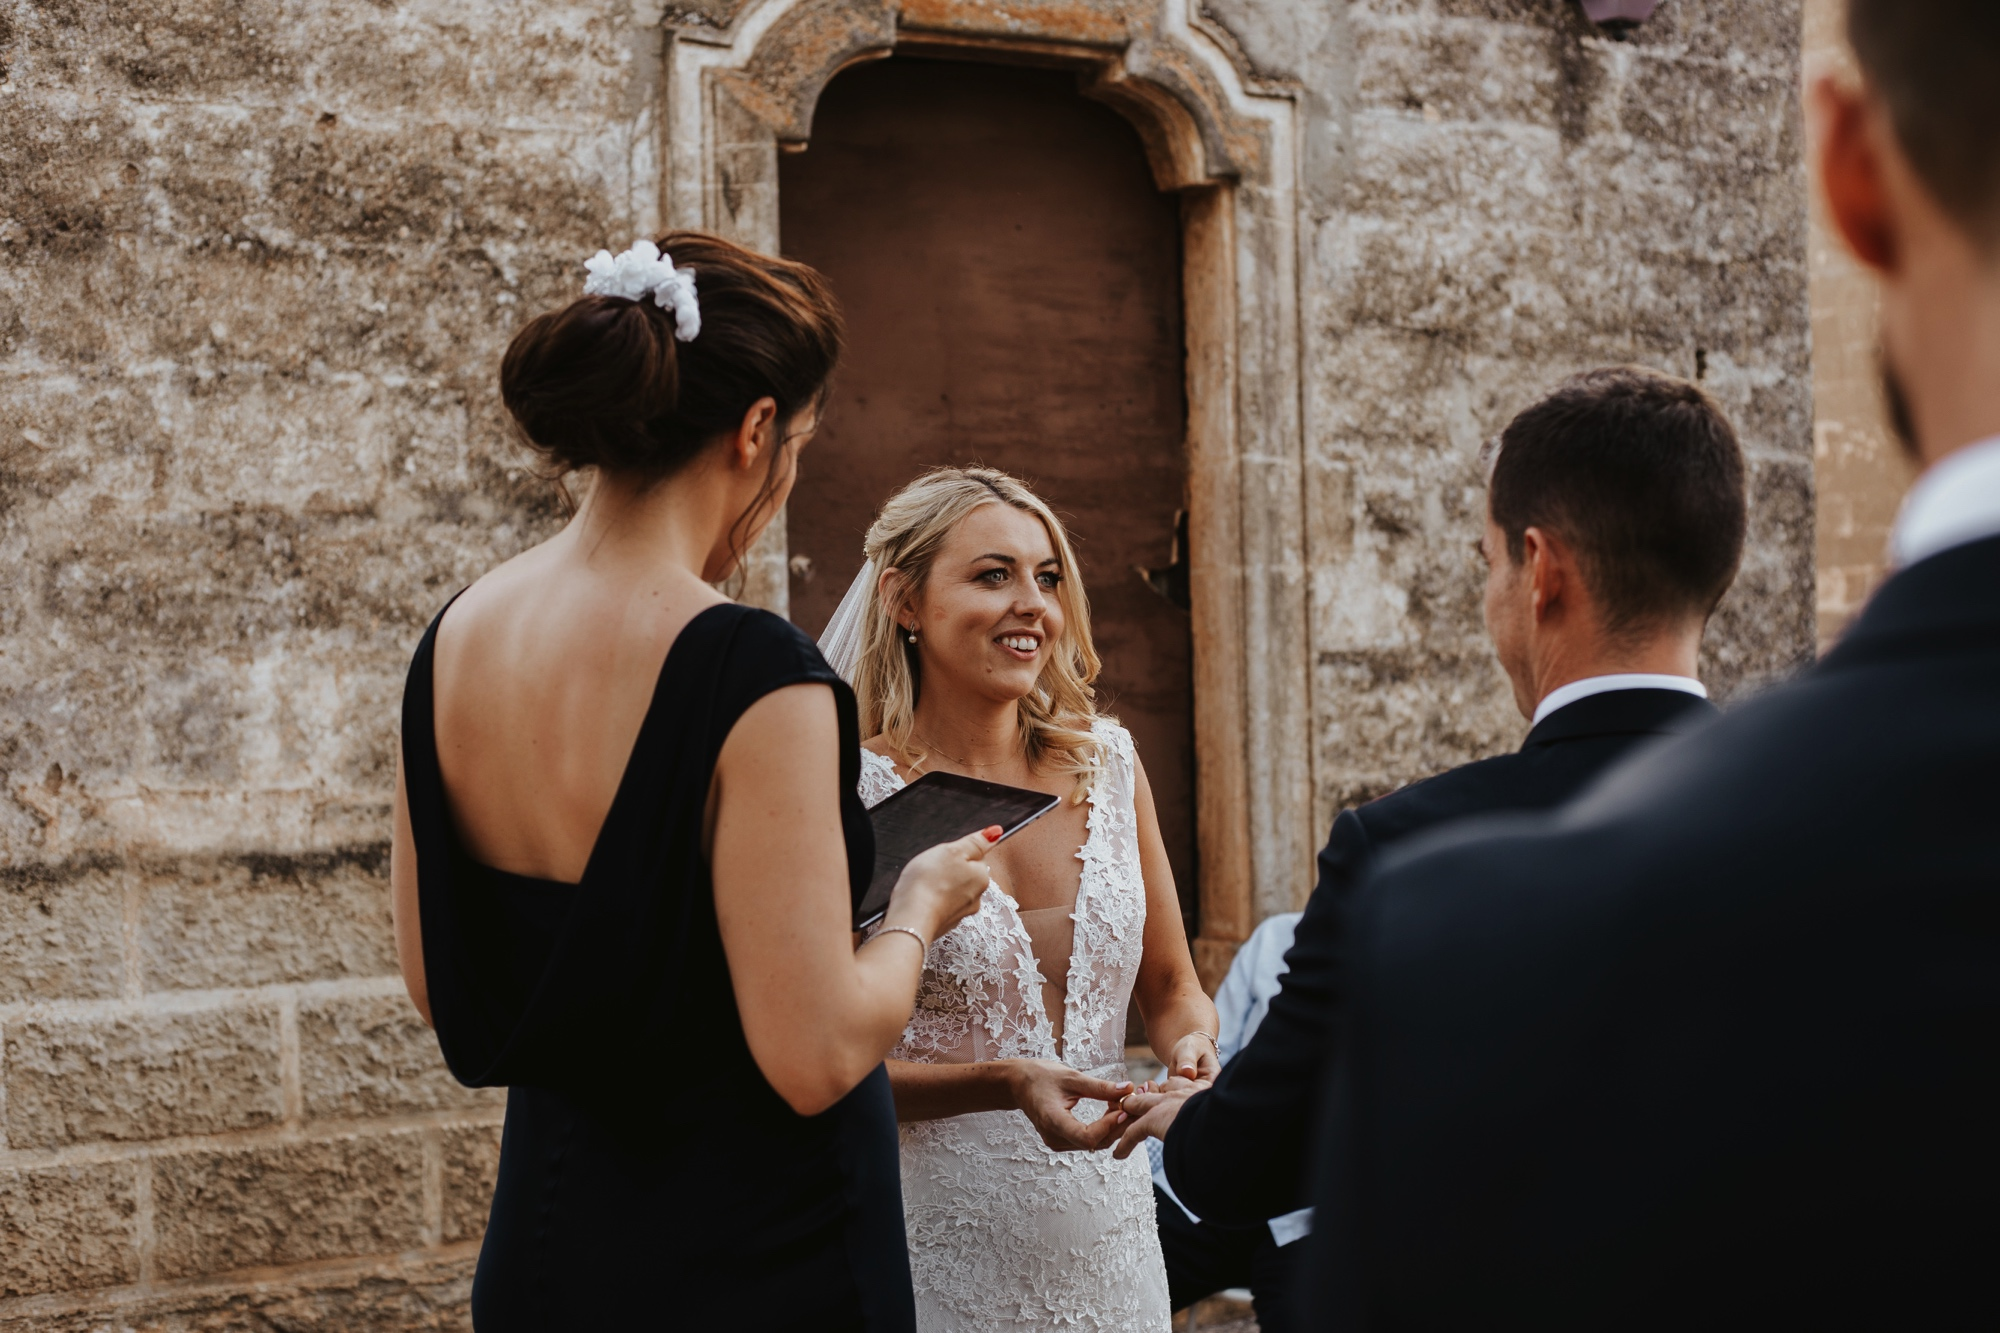 0000000041_Rob and Lucy-383_Weddings_Destination_Italy_got_Just_Engaged.jpg